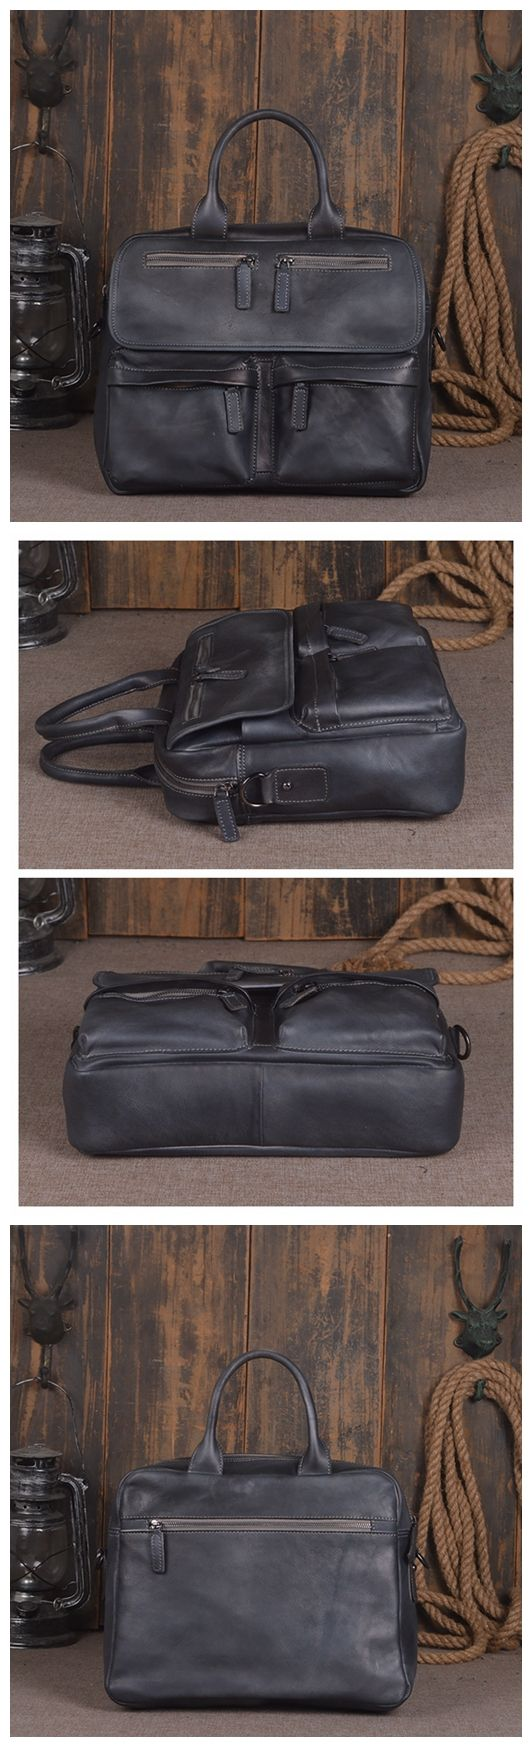 Handmade Vintage Genuine Leather Briefcase Men's Business Bag Handbag Messenger Bag Laptop Bag 14134 Overview: Design: Vintage Leather Men Briefcase In Stock: 4-5 days For Making Include: Only Leather